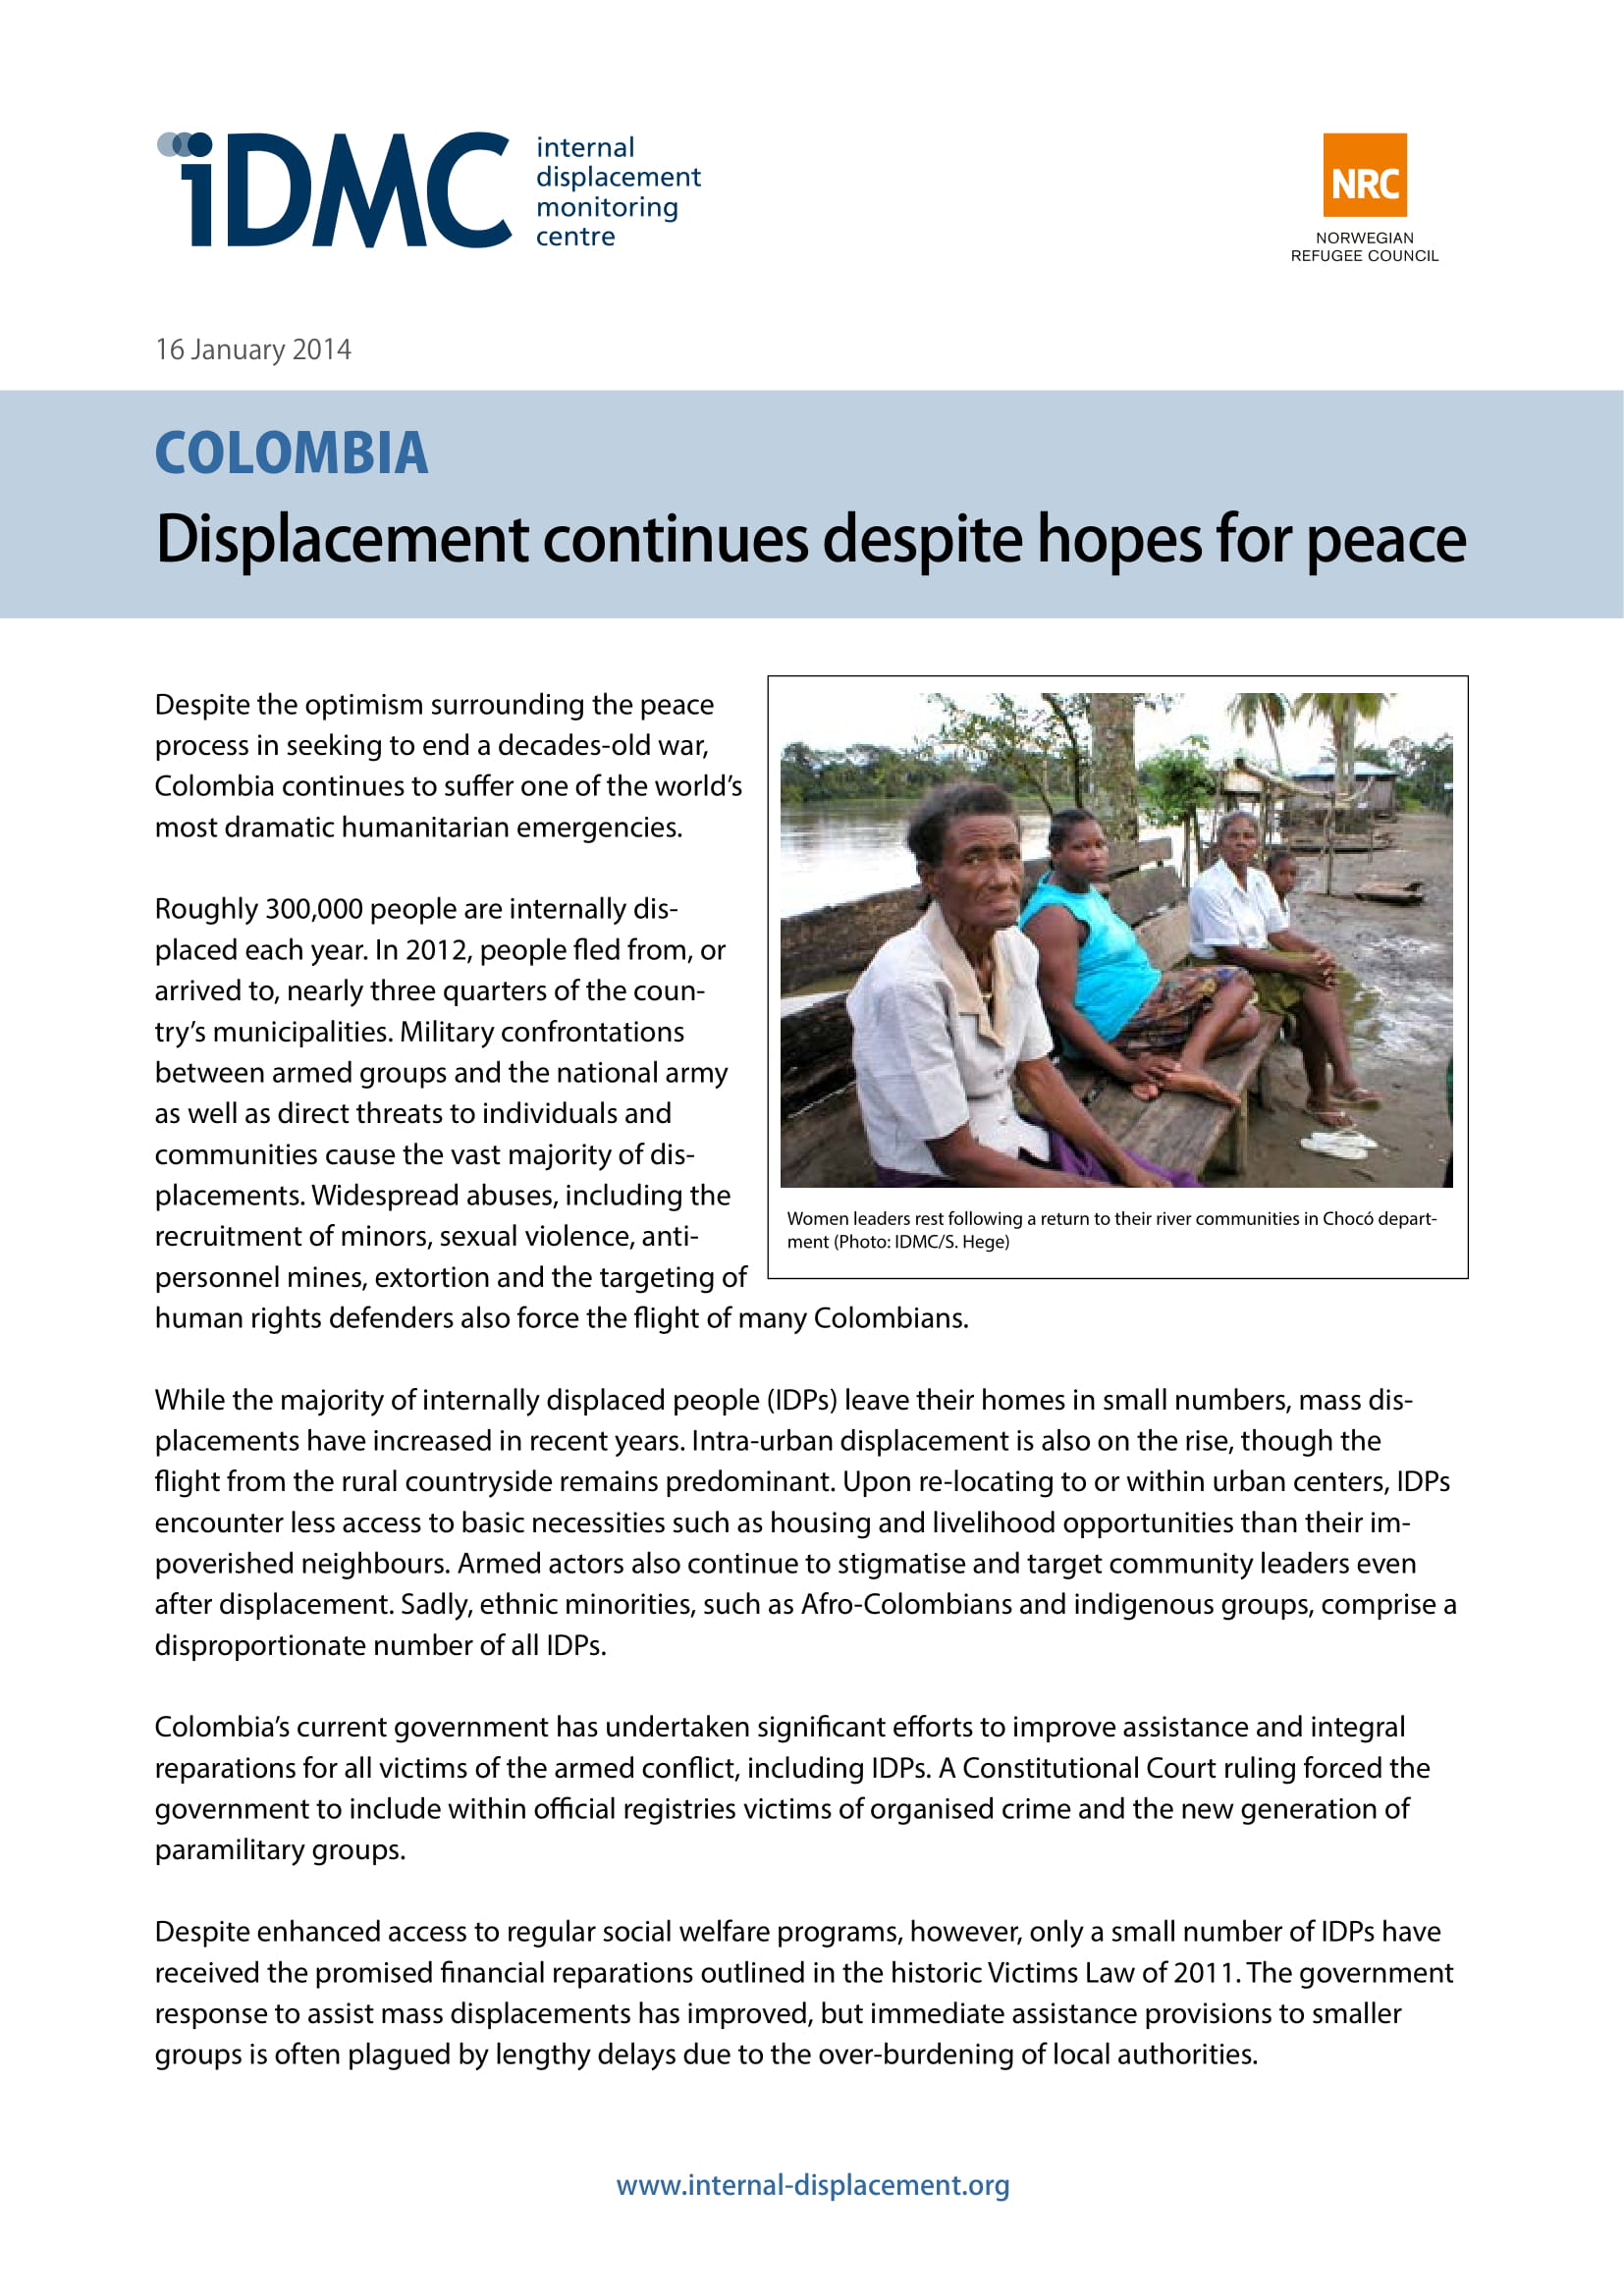 Colombia: Displacement continues despite hopes for peace